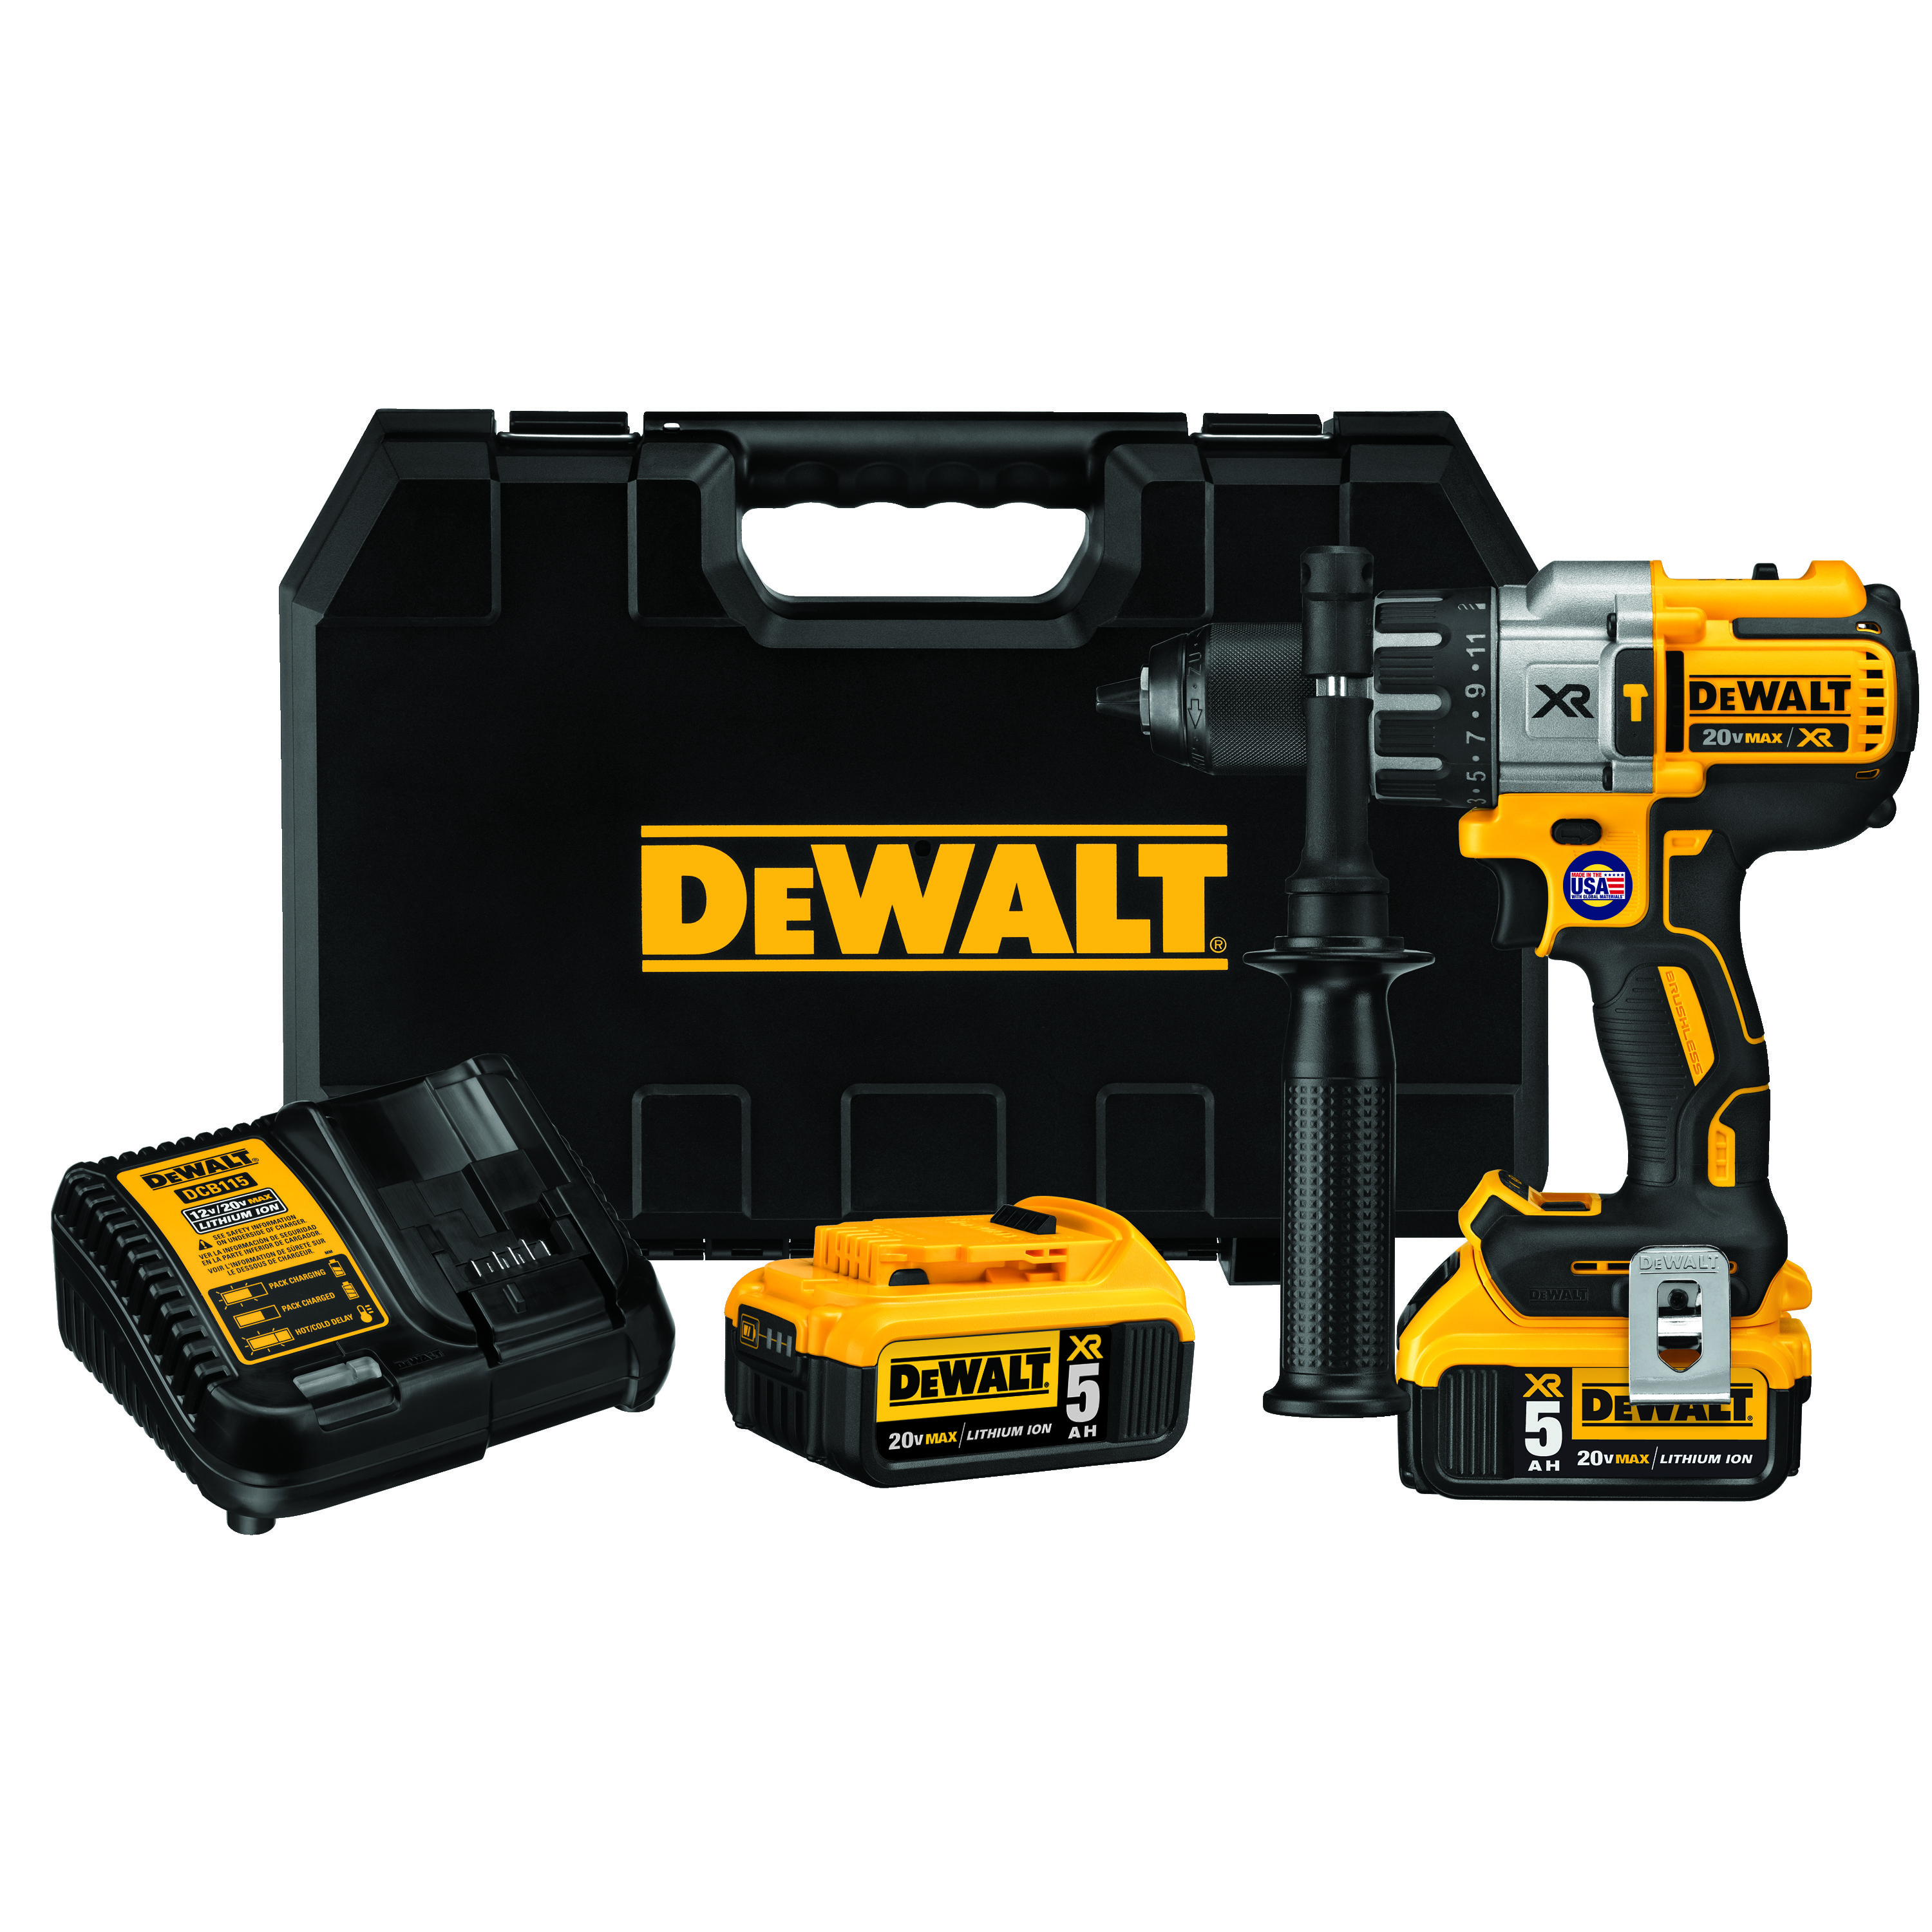 DeWALT® 20V MAX* DCD996P2 XR™ Brushless Cordless Hammer Drill Kit, 1/2 in Metal Ratcheting Chuck, 20 VDC, 0 to 2250 rpm No-Load, Lithium-Ion Battery